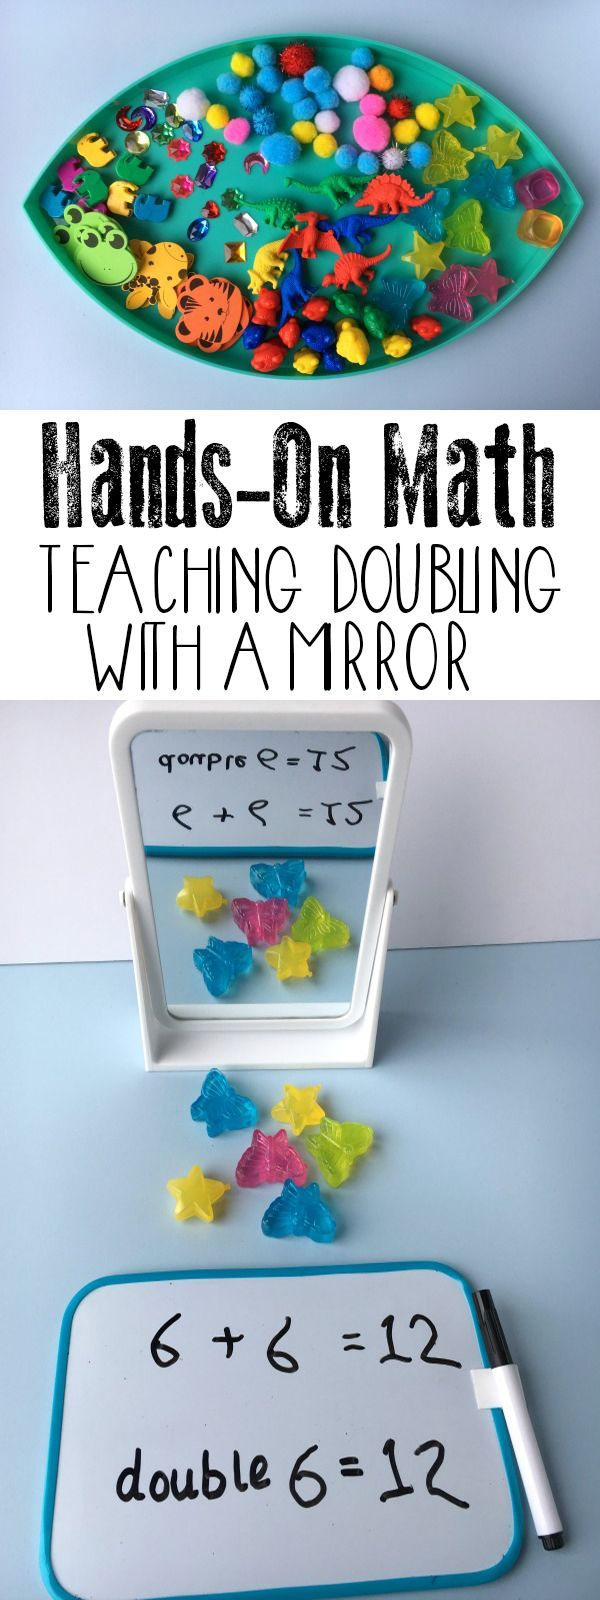 768 best Maths Resources images on Pinterest | 4th grade math ...